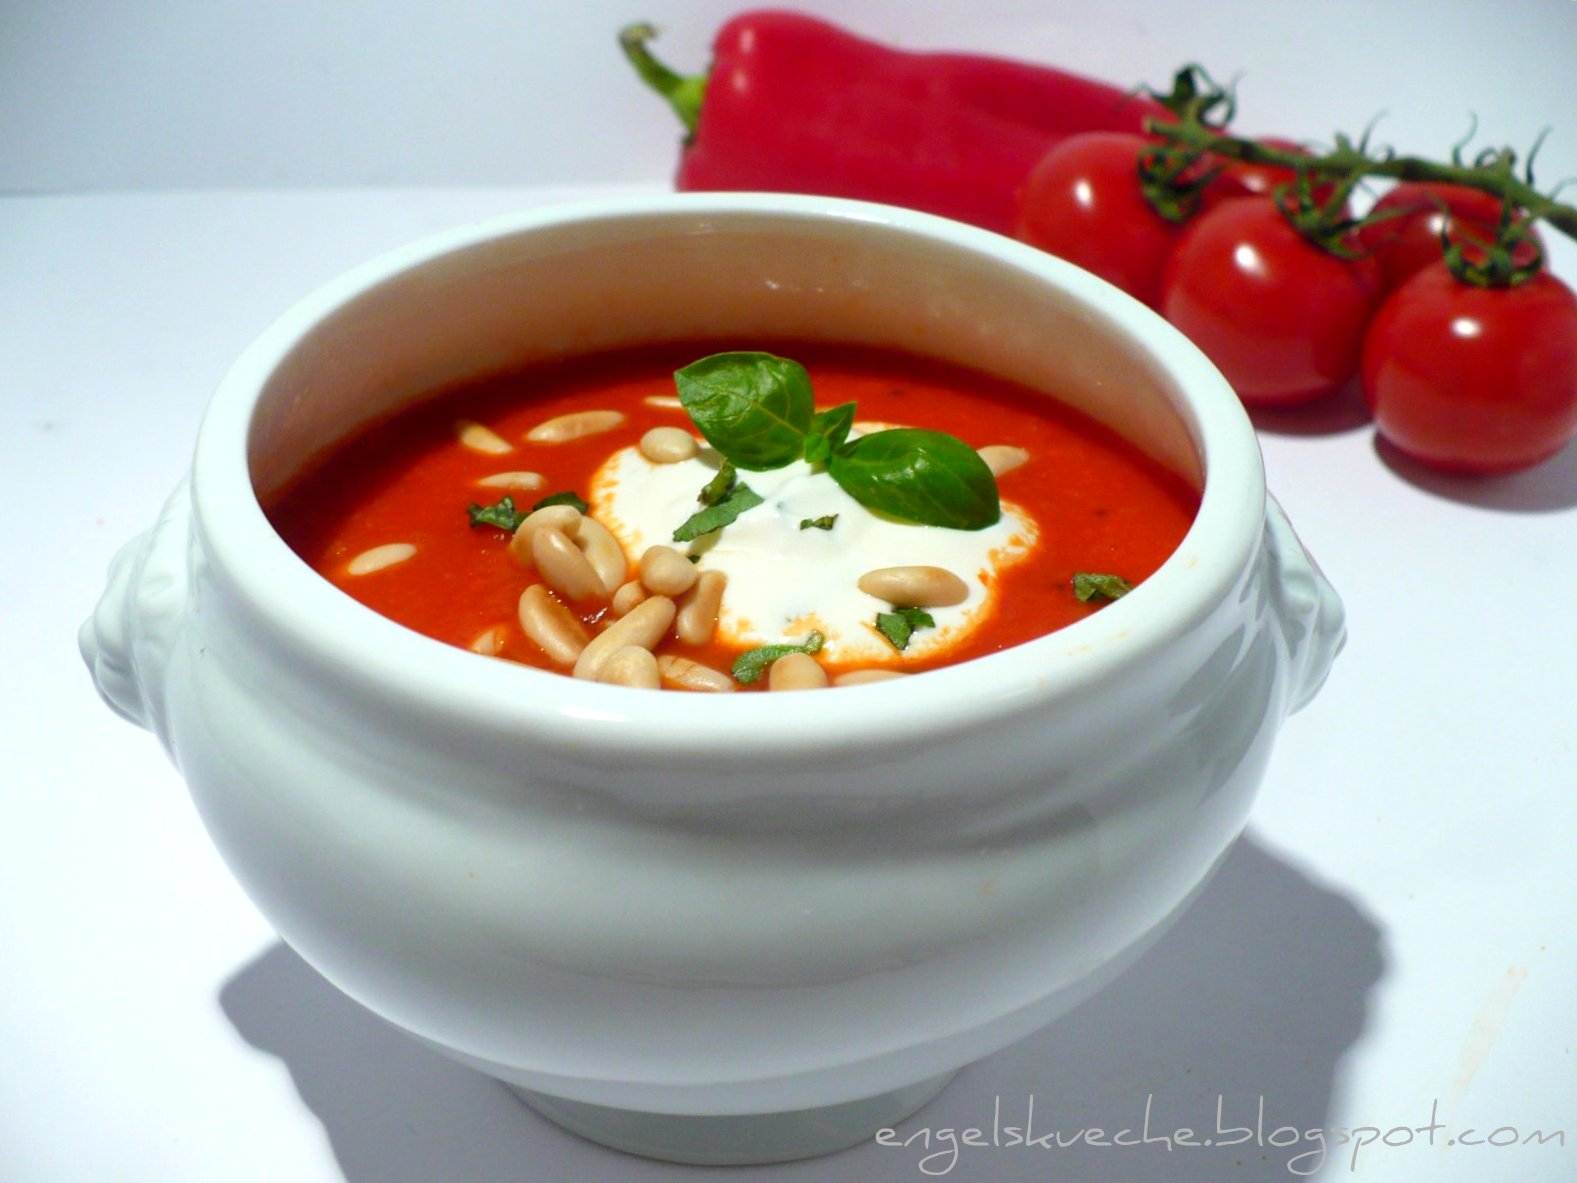 tomaten paprika suppe mit champions rezepte suchen. Black Bedroom Furniture Sets. Home Design Ideas